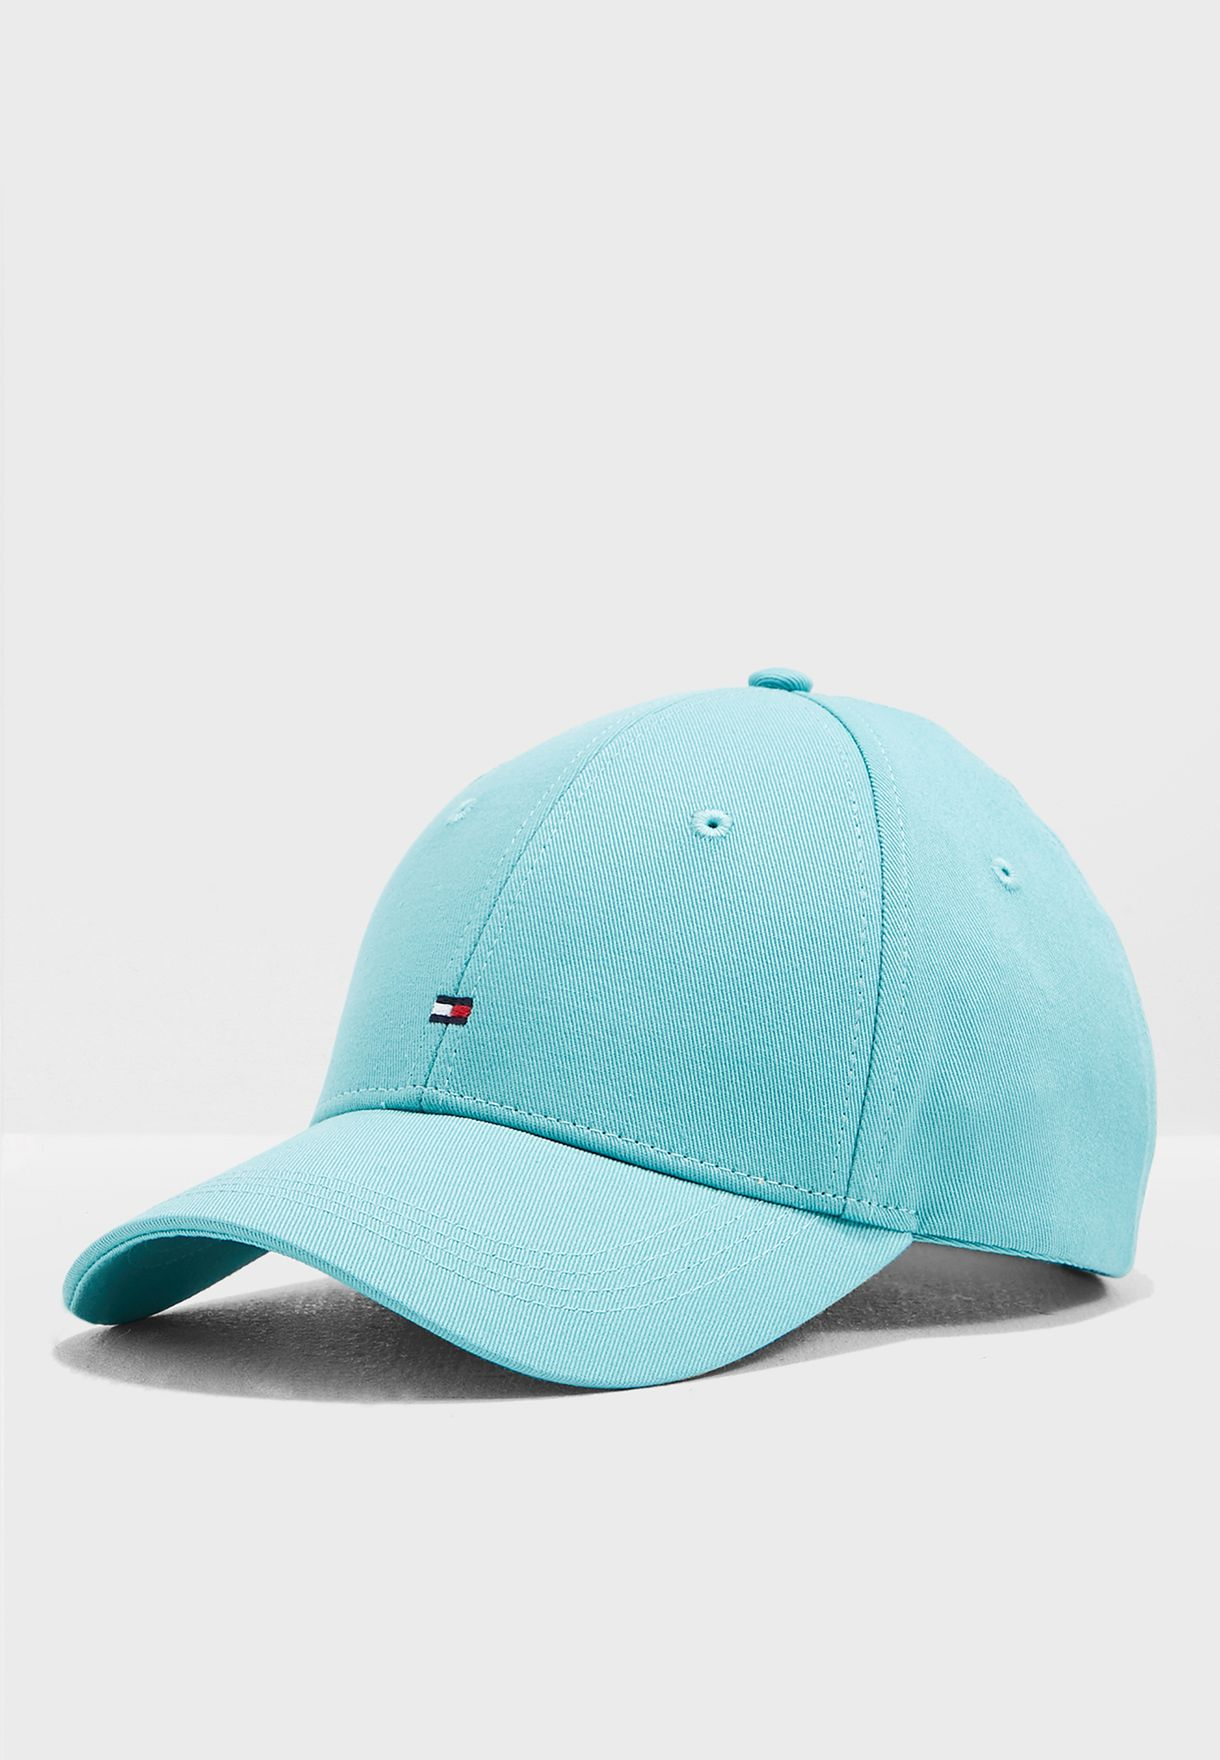 9067d16669c Shop Tommy Hilfiger blue Classic Curved Peak Cap AW0AW06573 for Women in  Qatar - 12232AC51ASP